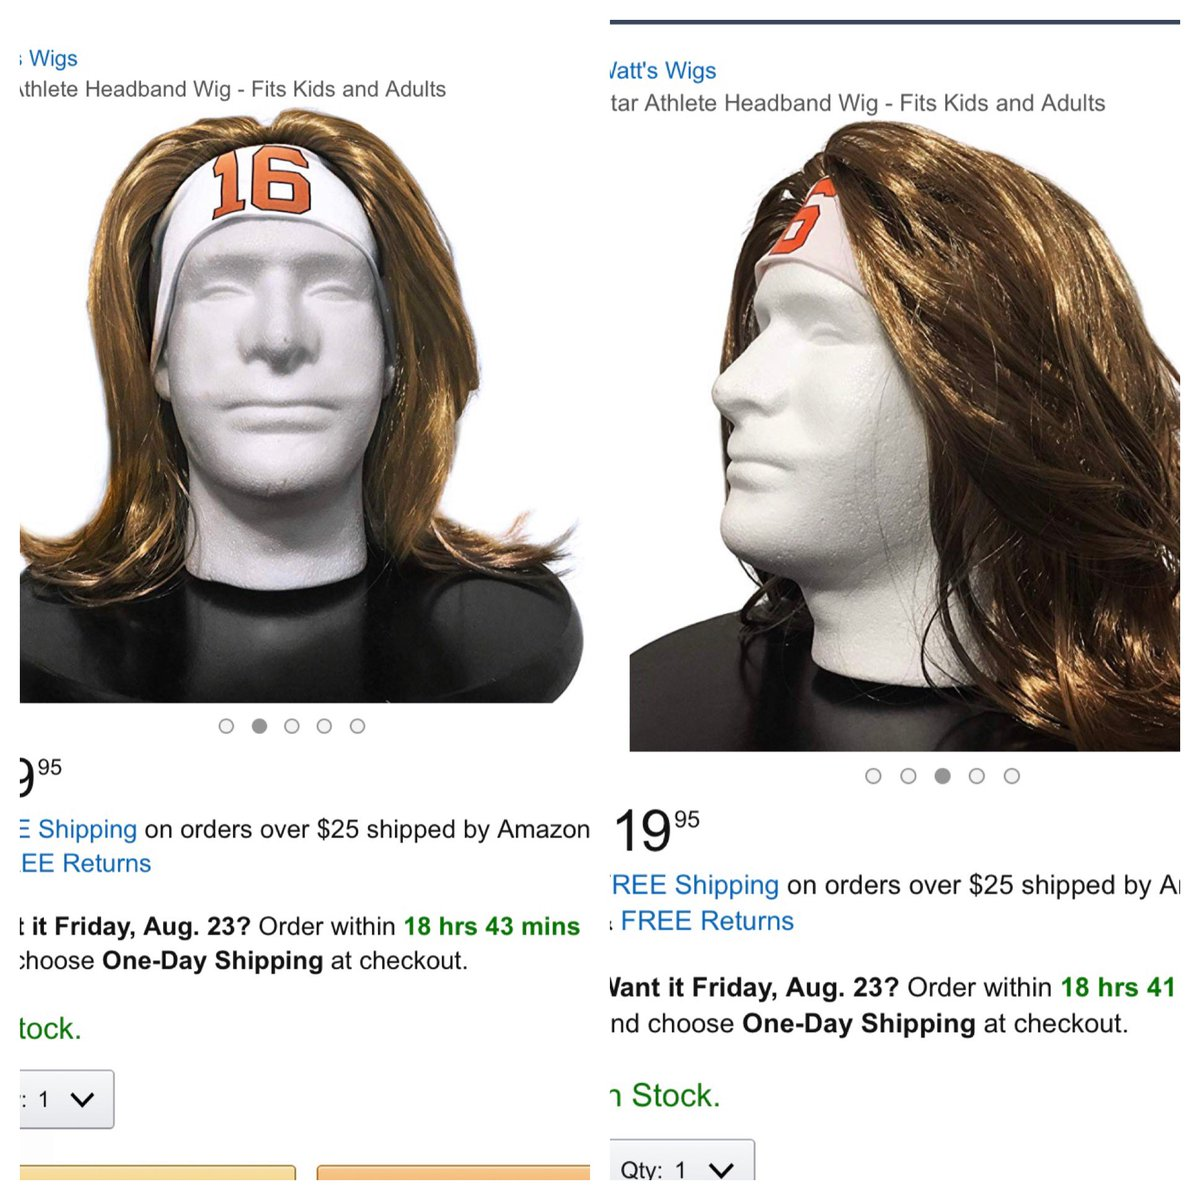 Amazon with the crazy Trevor Lawrence Swag!! #AllHailLordLawrence https://t.co/DQVlCqZAZp